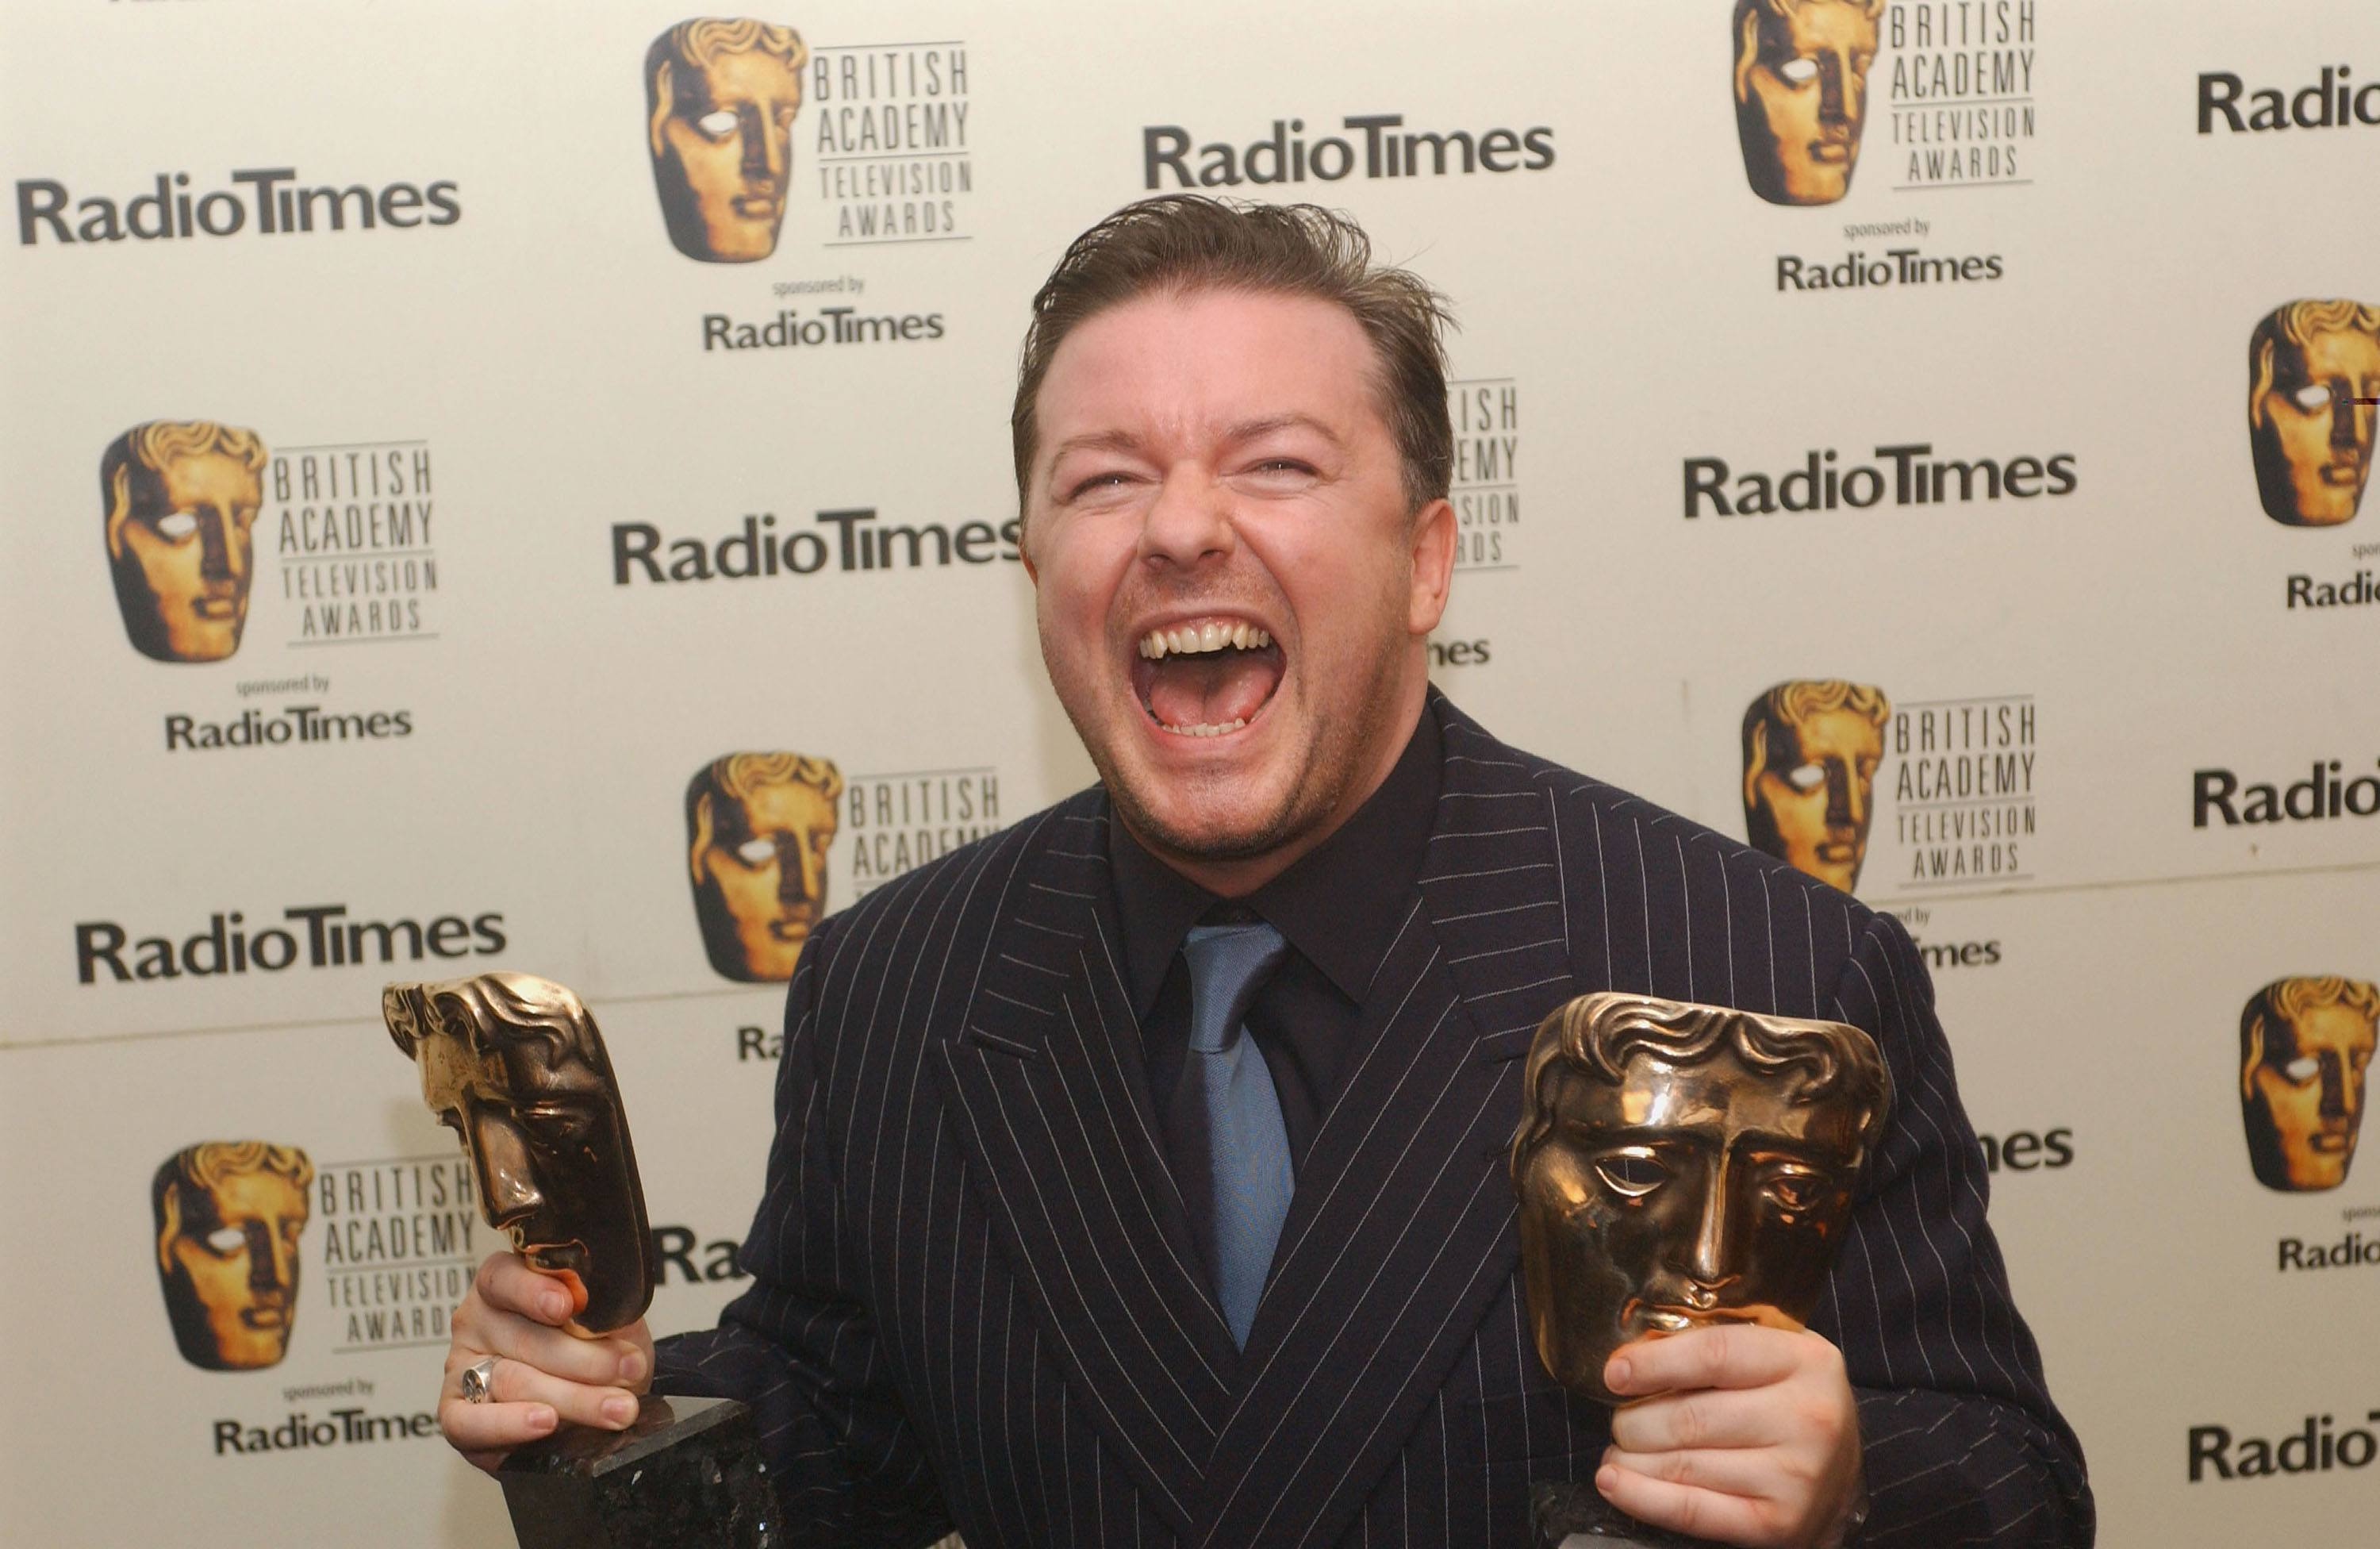 Ricky Gervais at the The British Academy Television Awards in 2004